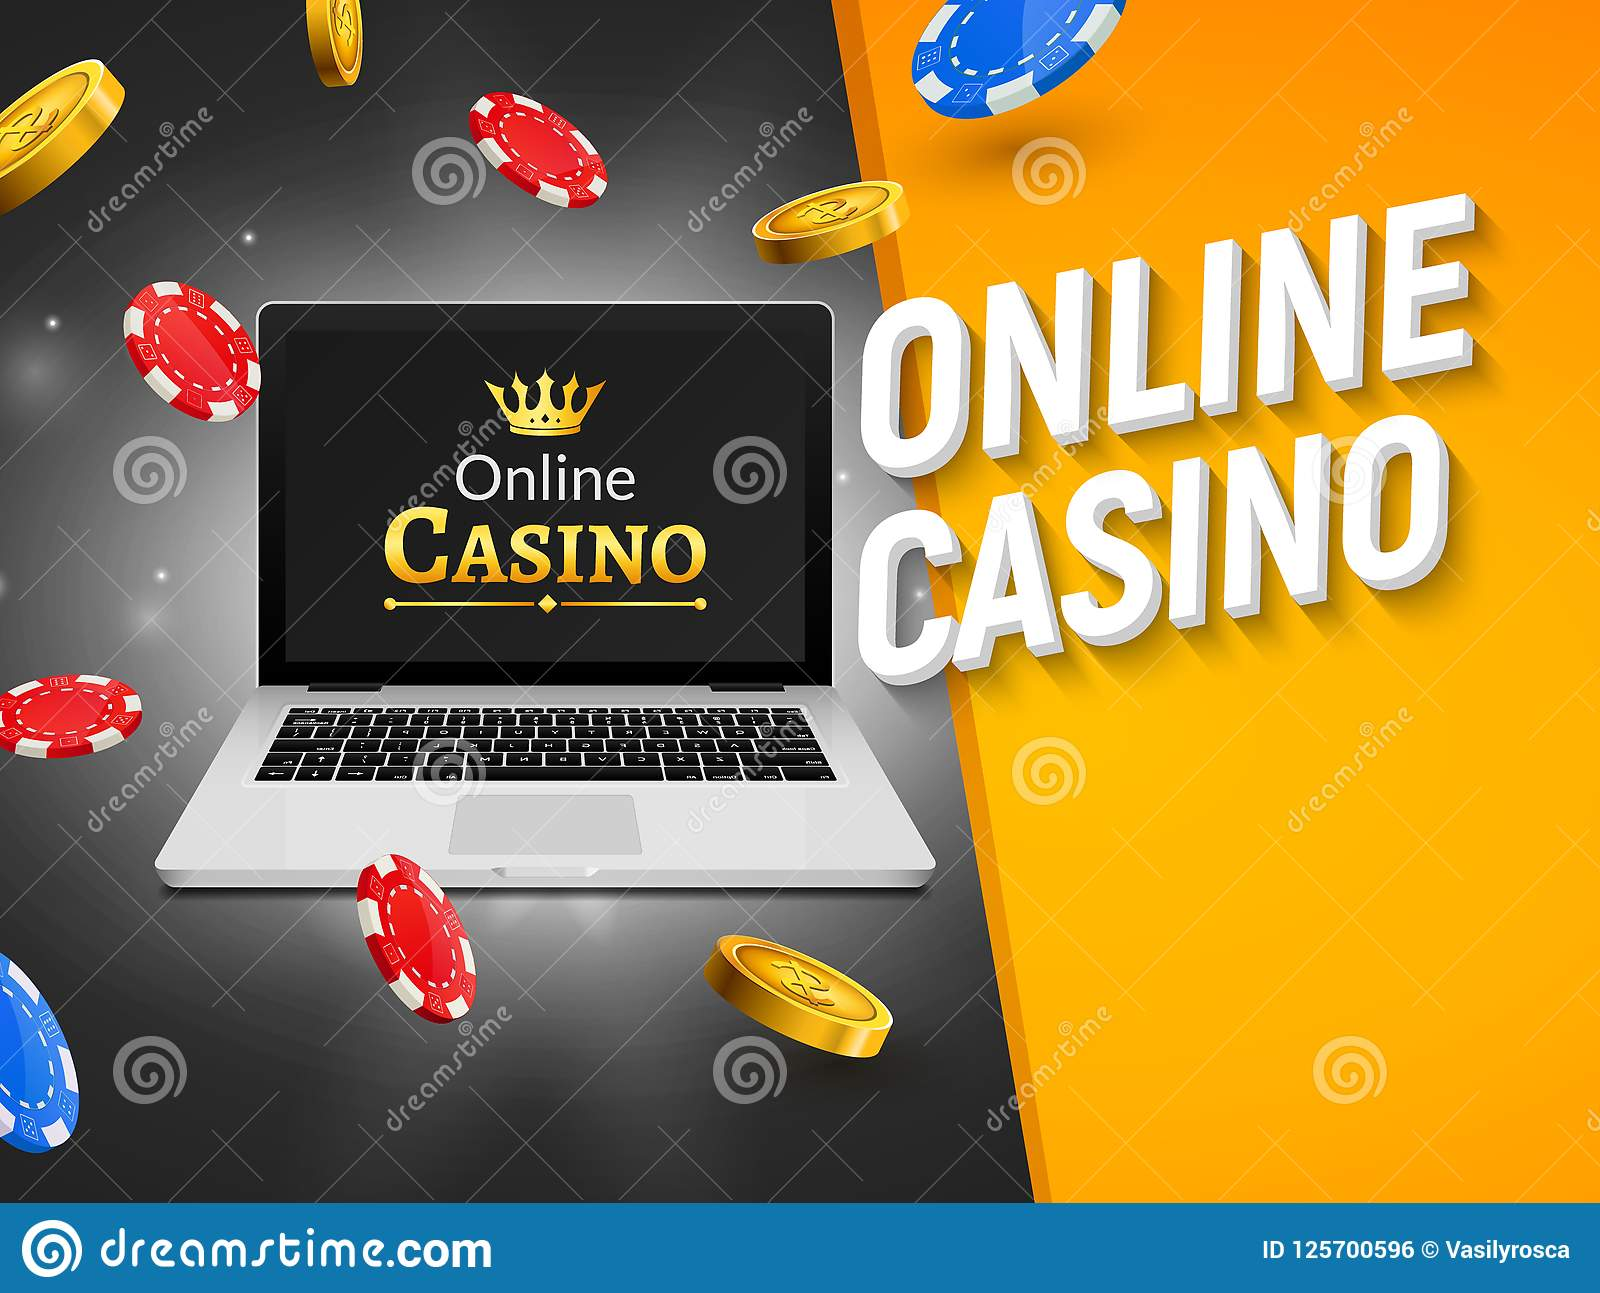 Online casino banner with laptop coins and falling chips. Roulette luck money game. Online poker casino